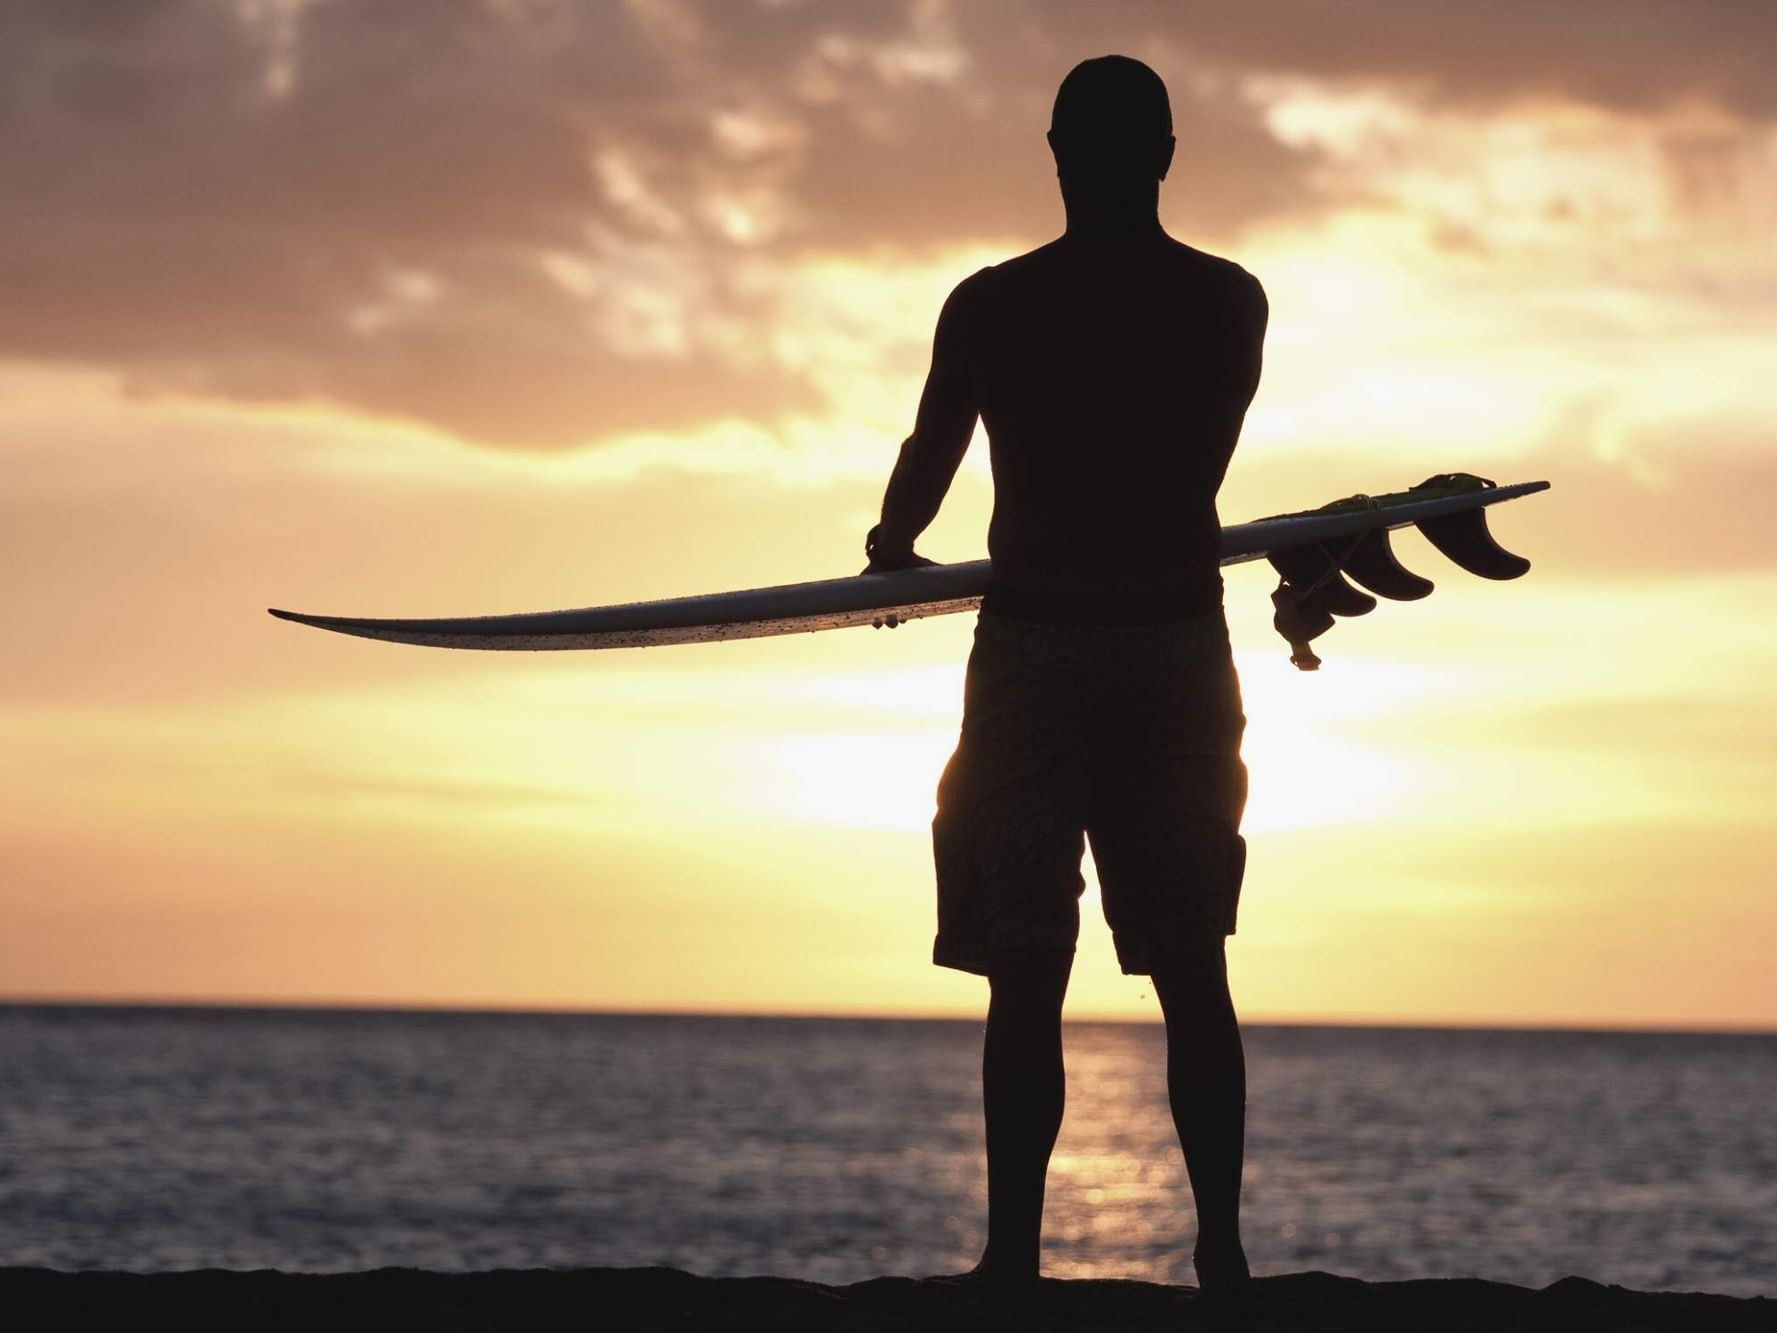 silhouette of man holding surfboard at sunset